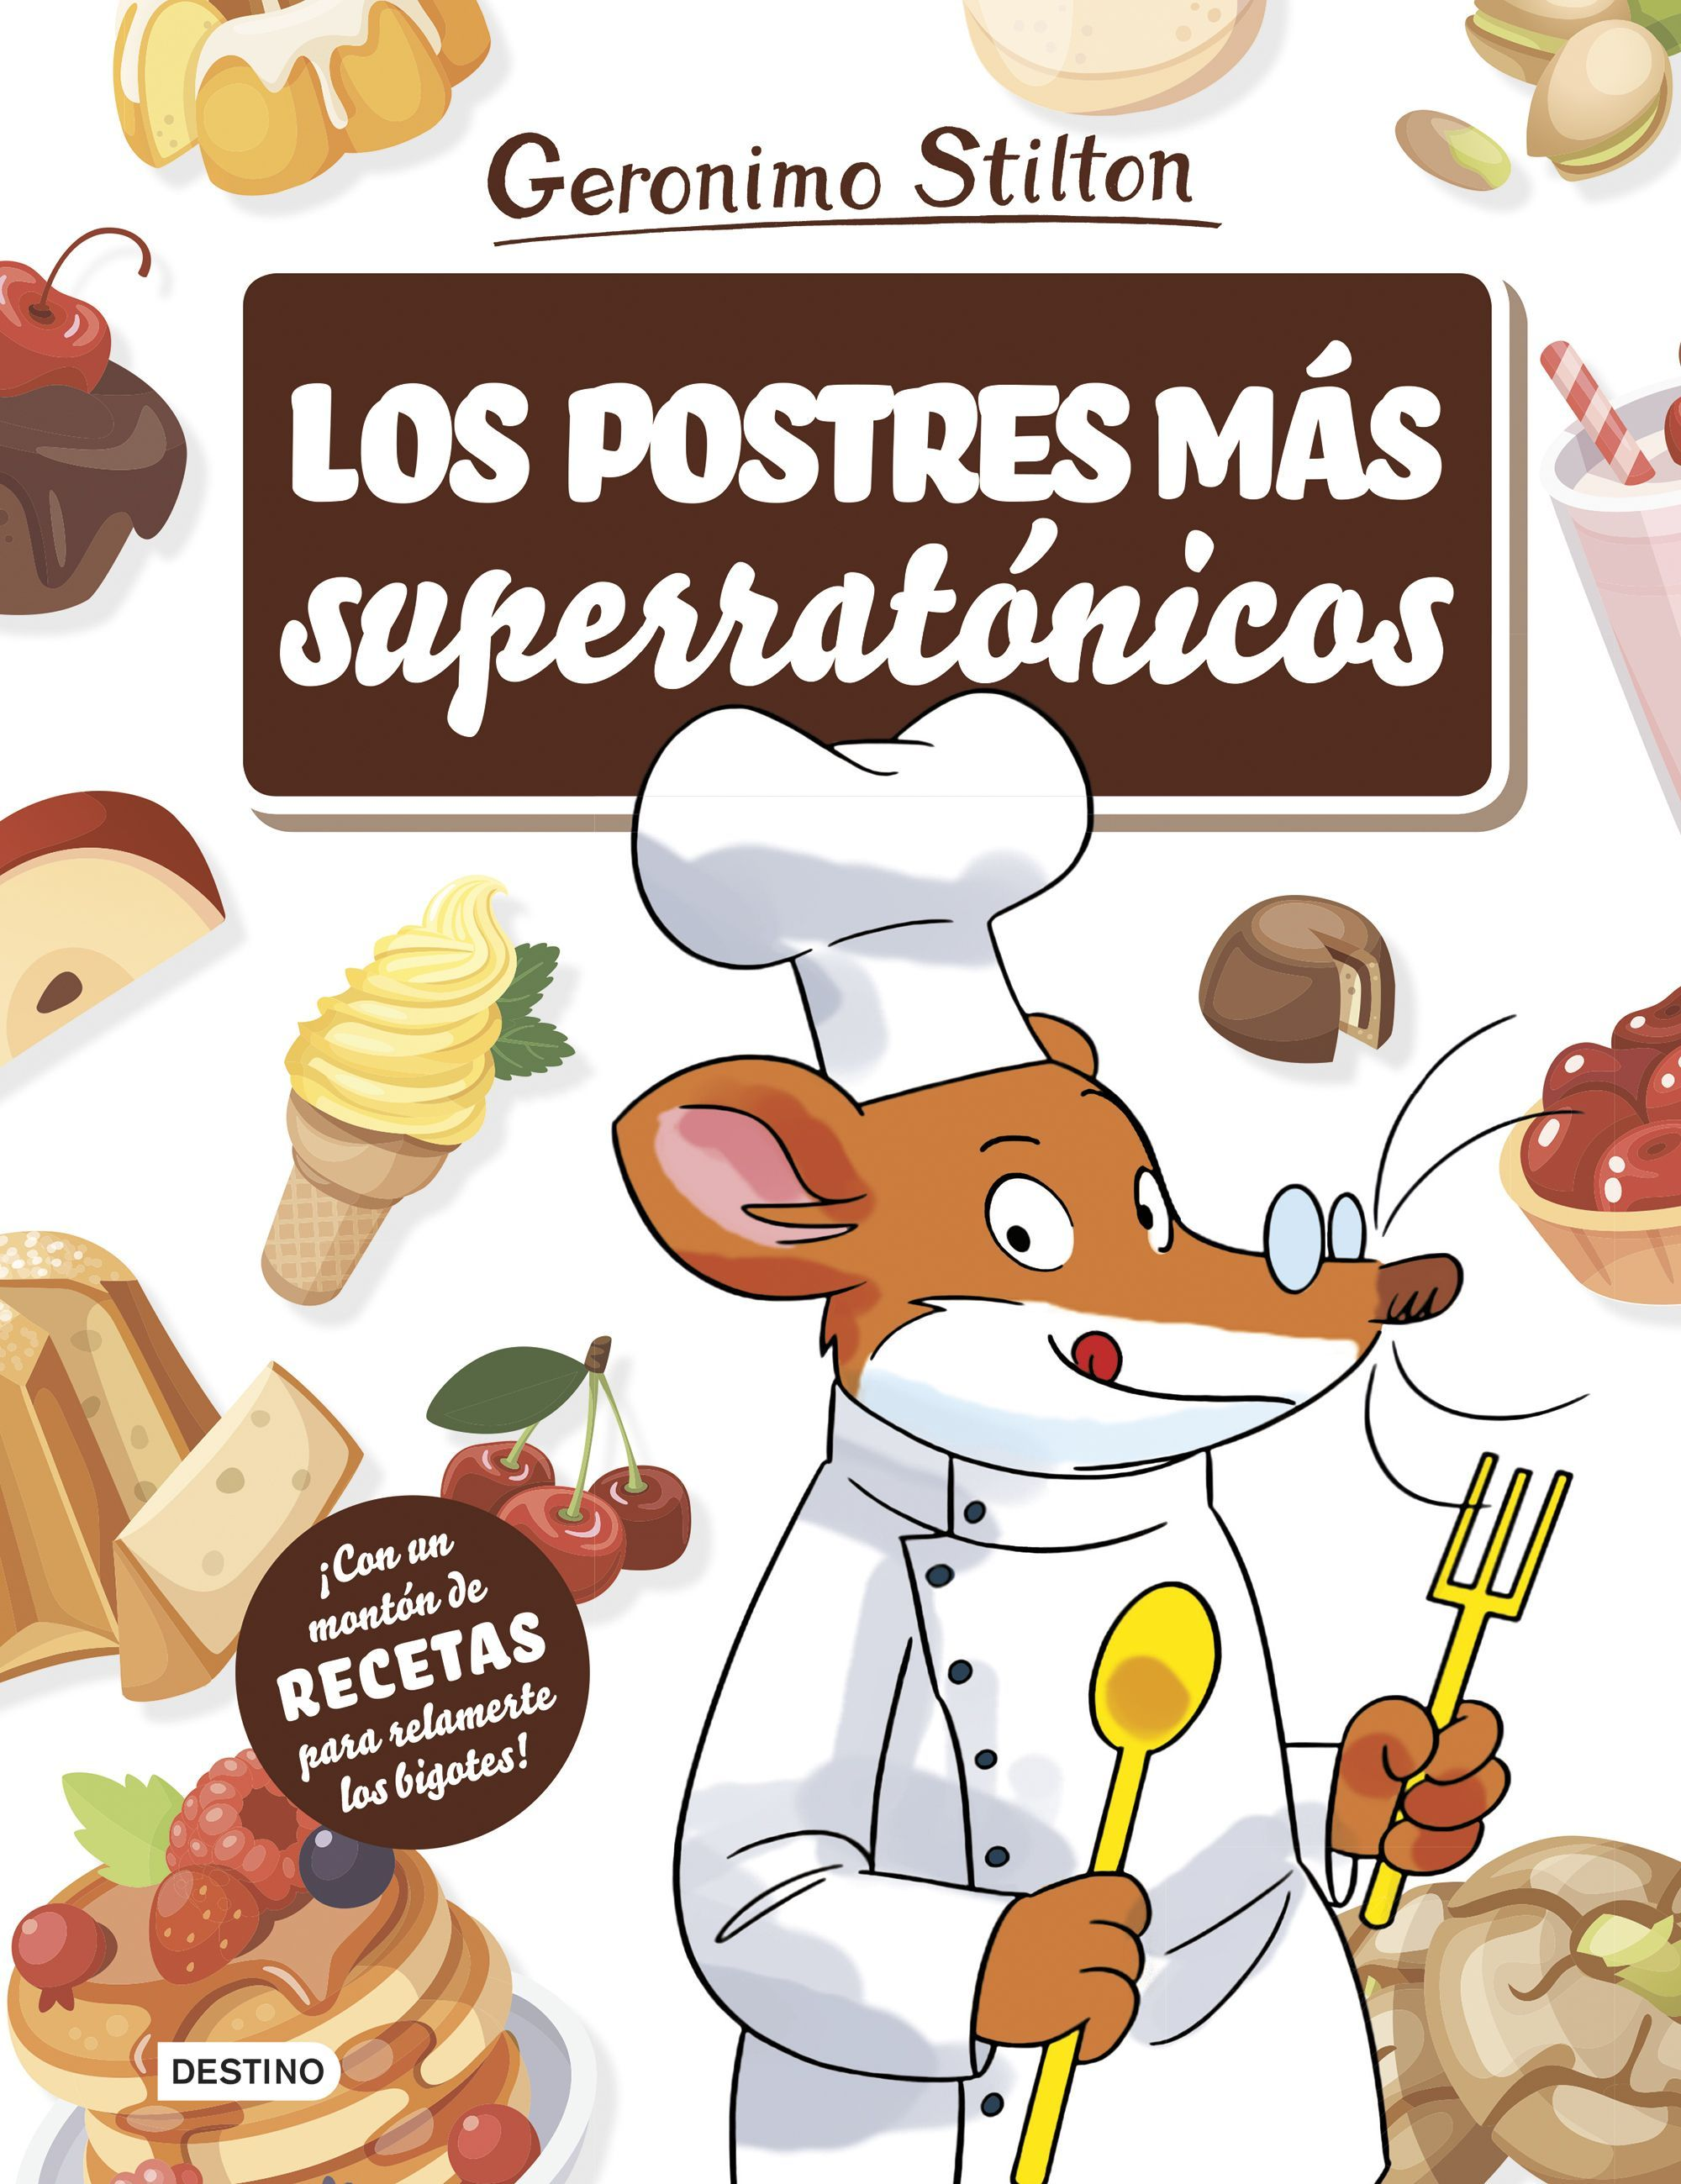 POSTRES MAS SUPERRATONICOS